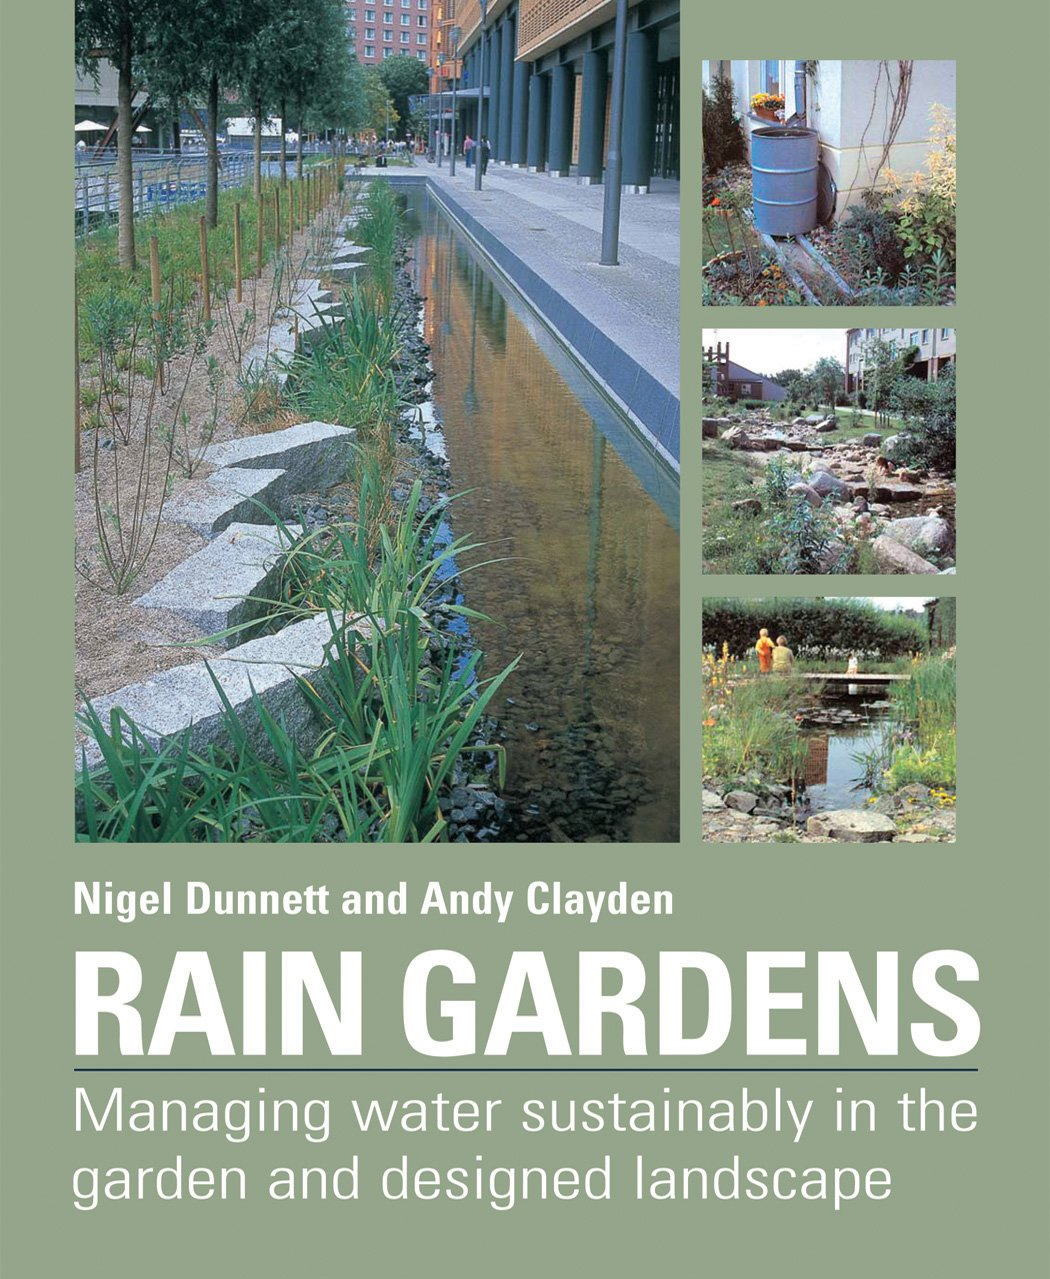 Rain Gardens Managing Water Sustainably in the Garden and